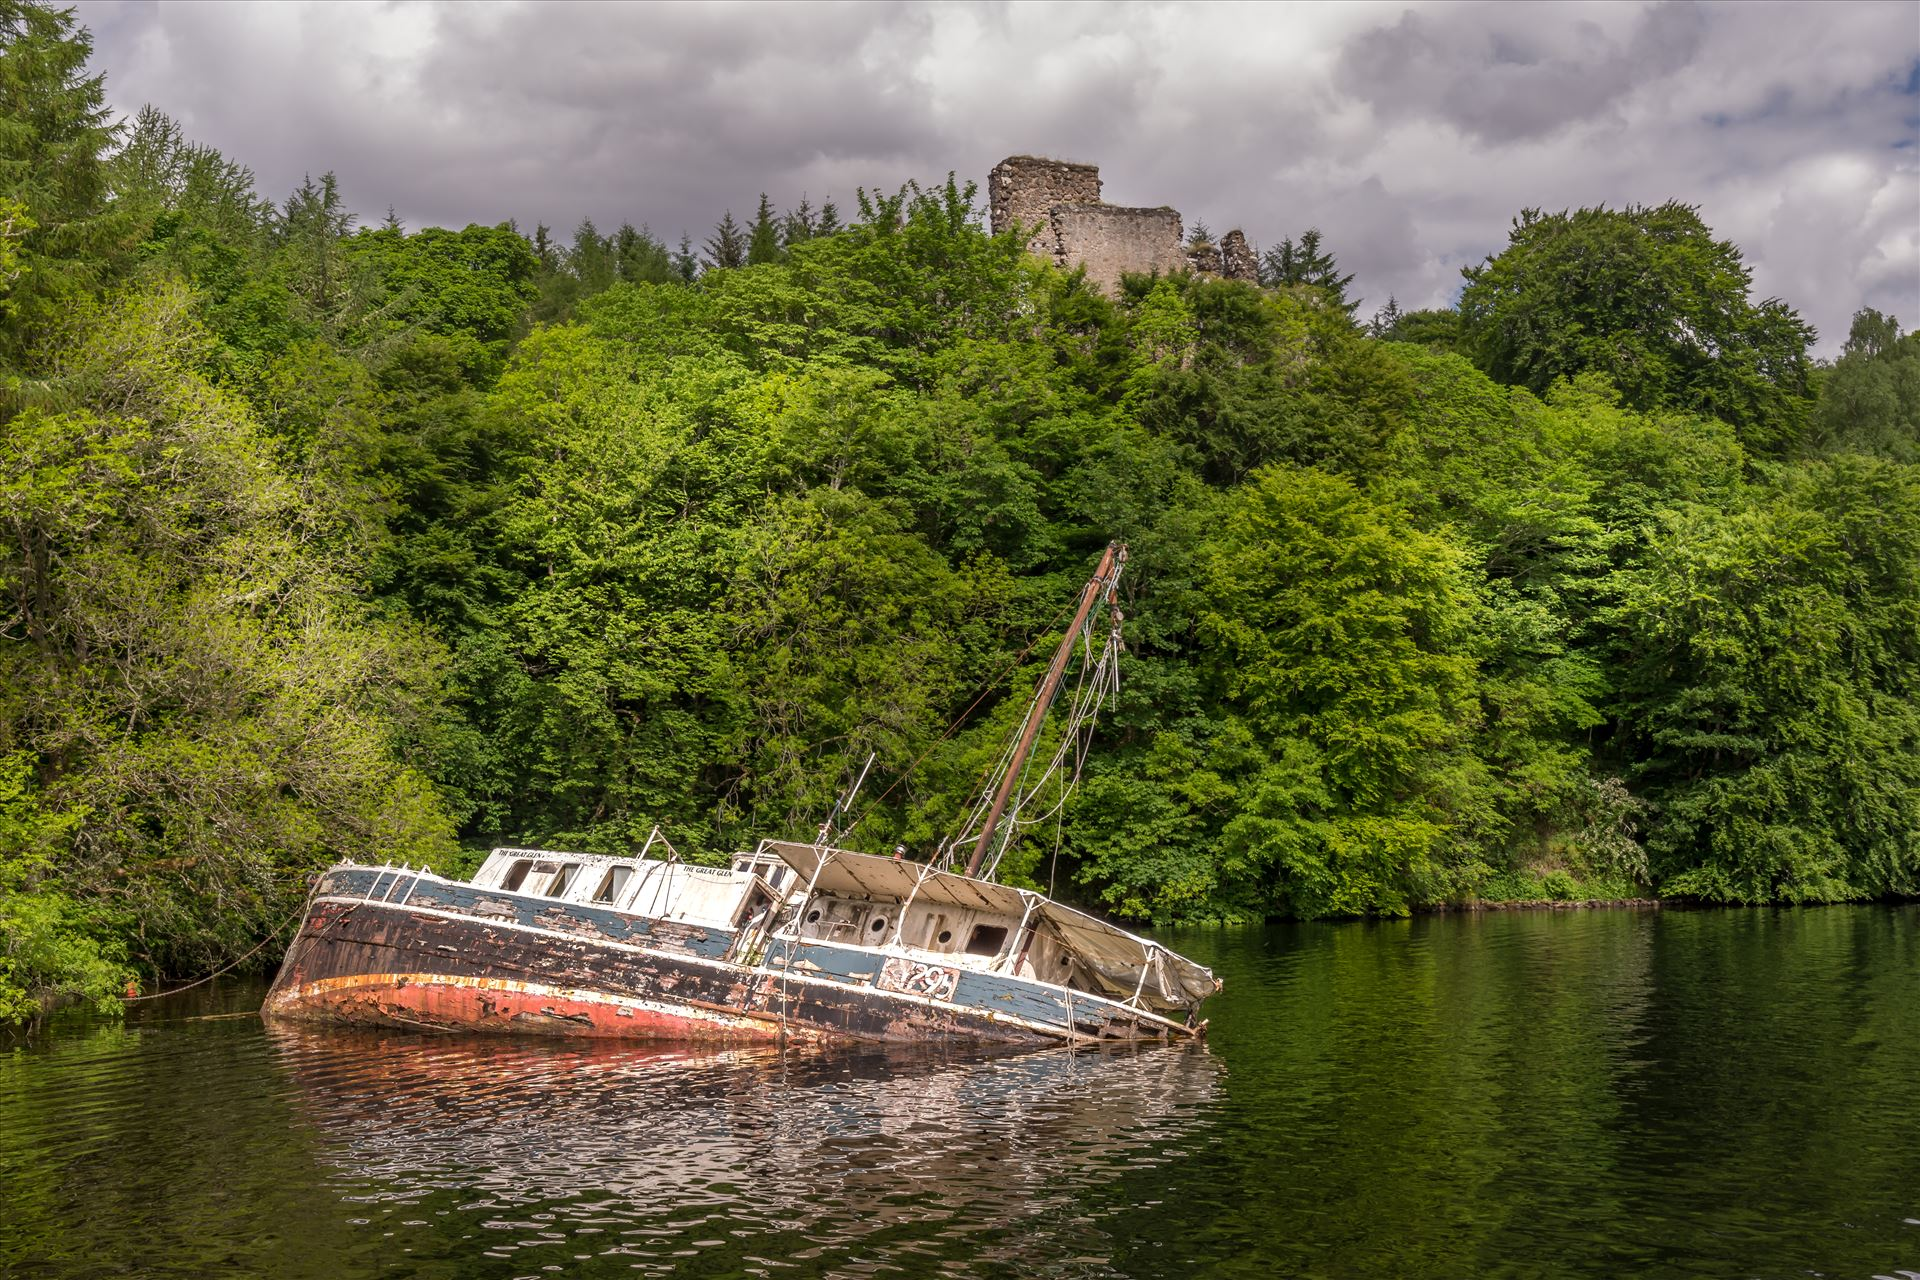 Invergarry Castle & the Eala Bhan - The Eala Bhan shipwreck overlooked by Invergarry Castle on Loch Oich, part of the Caladonian Canal. by philreay